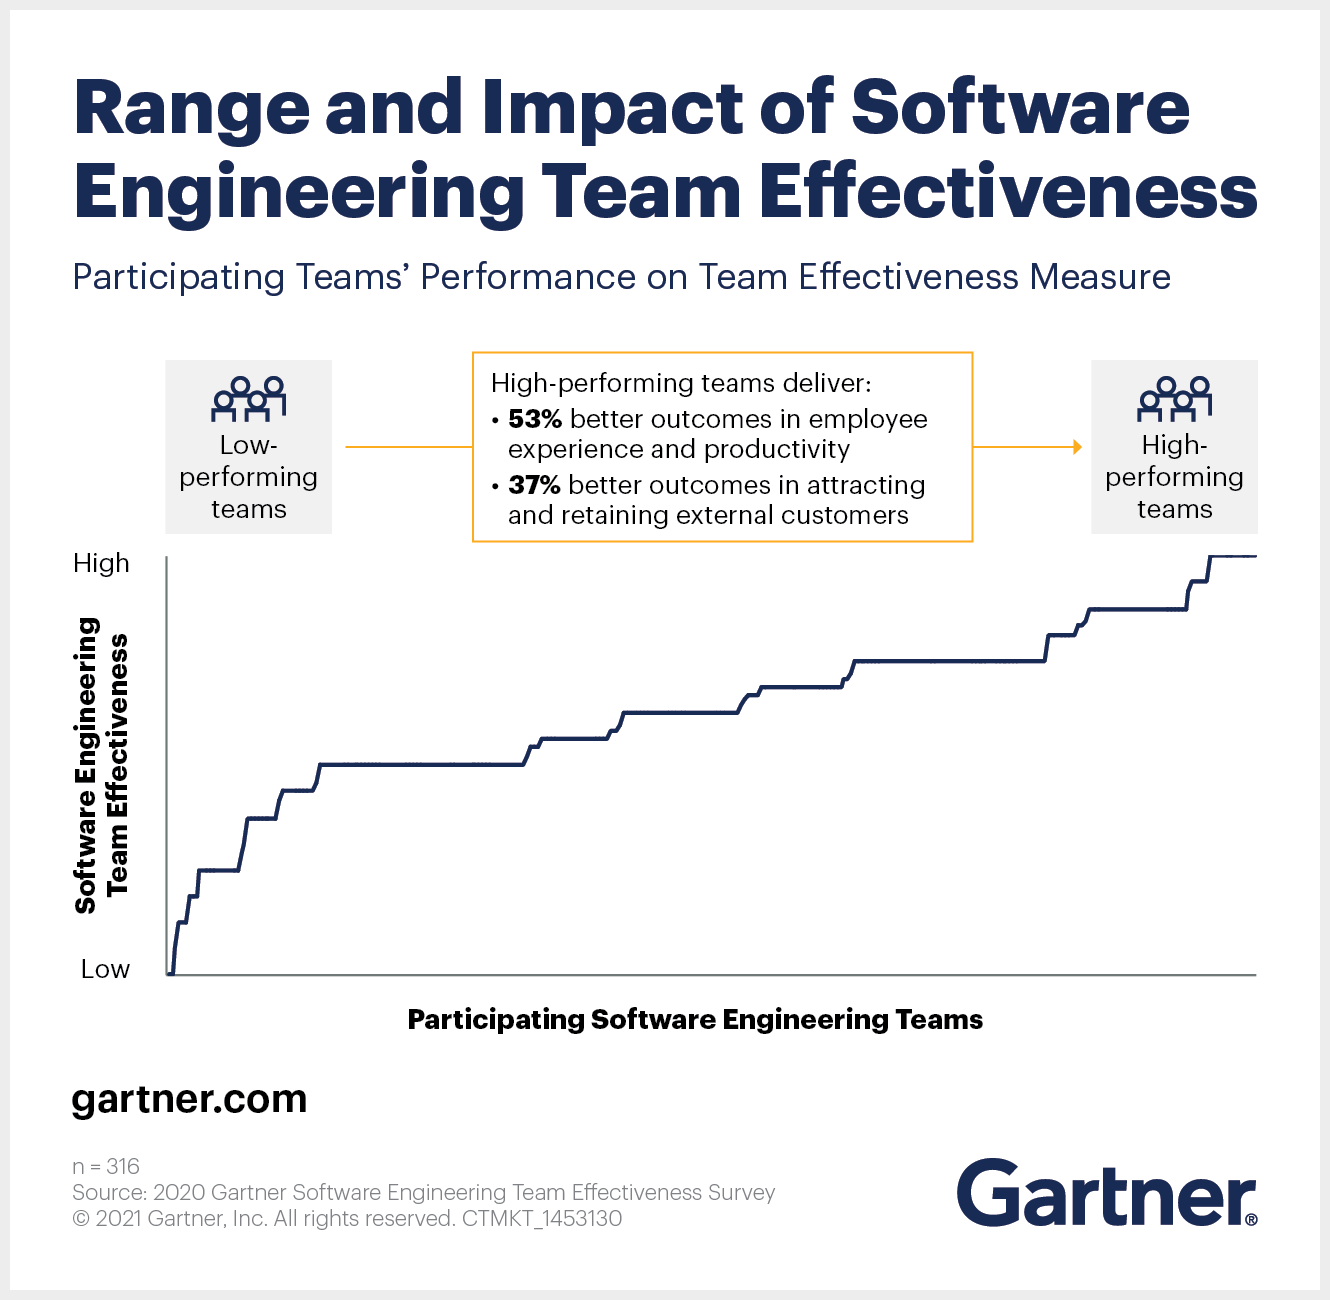 Range and Impact of Software Engineering Team Effectiveness